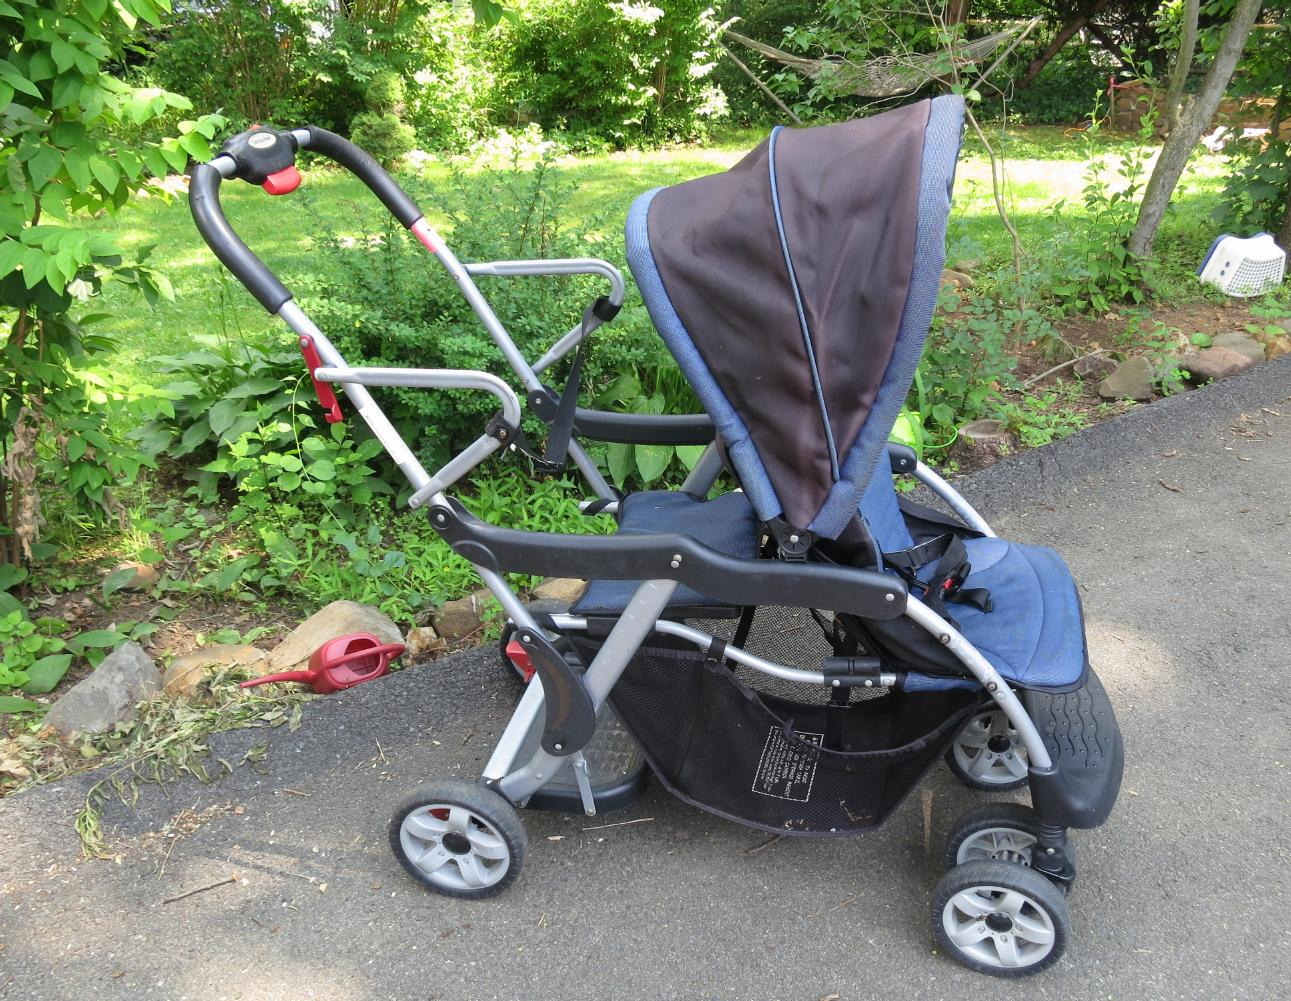 Offspring Carriage Devices